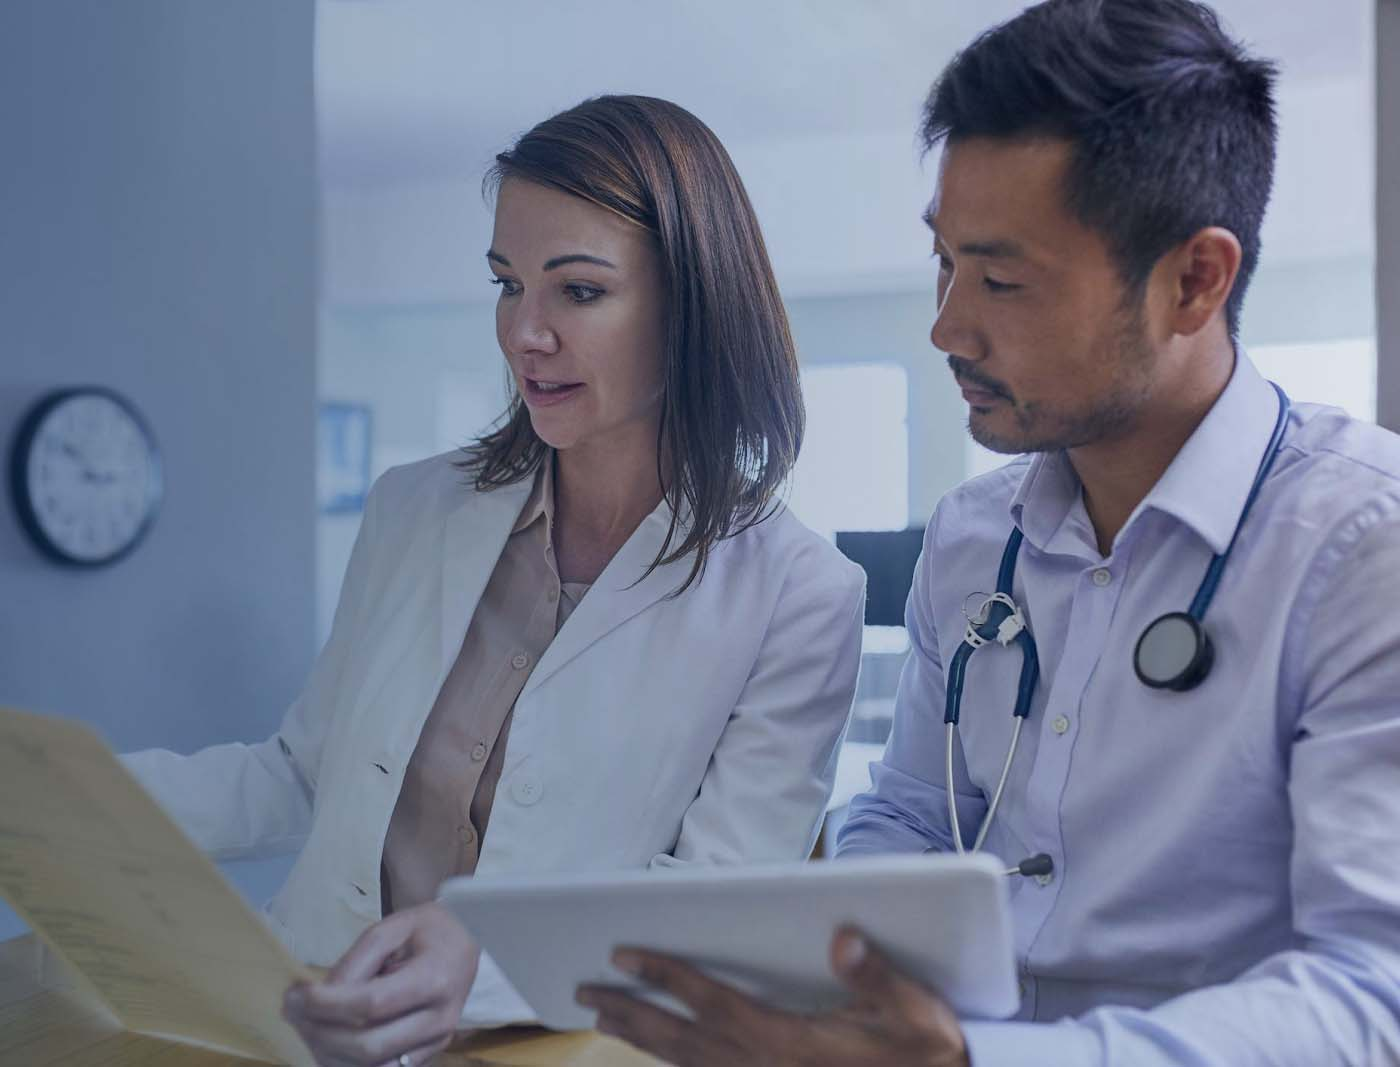 two doctors reviewing charts